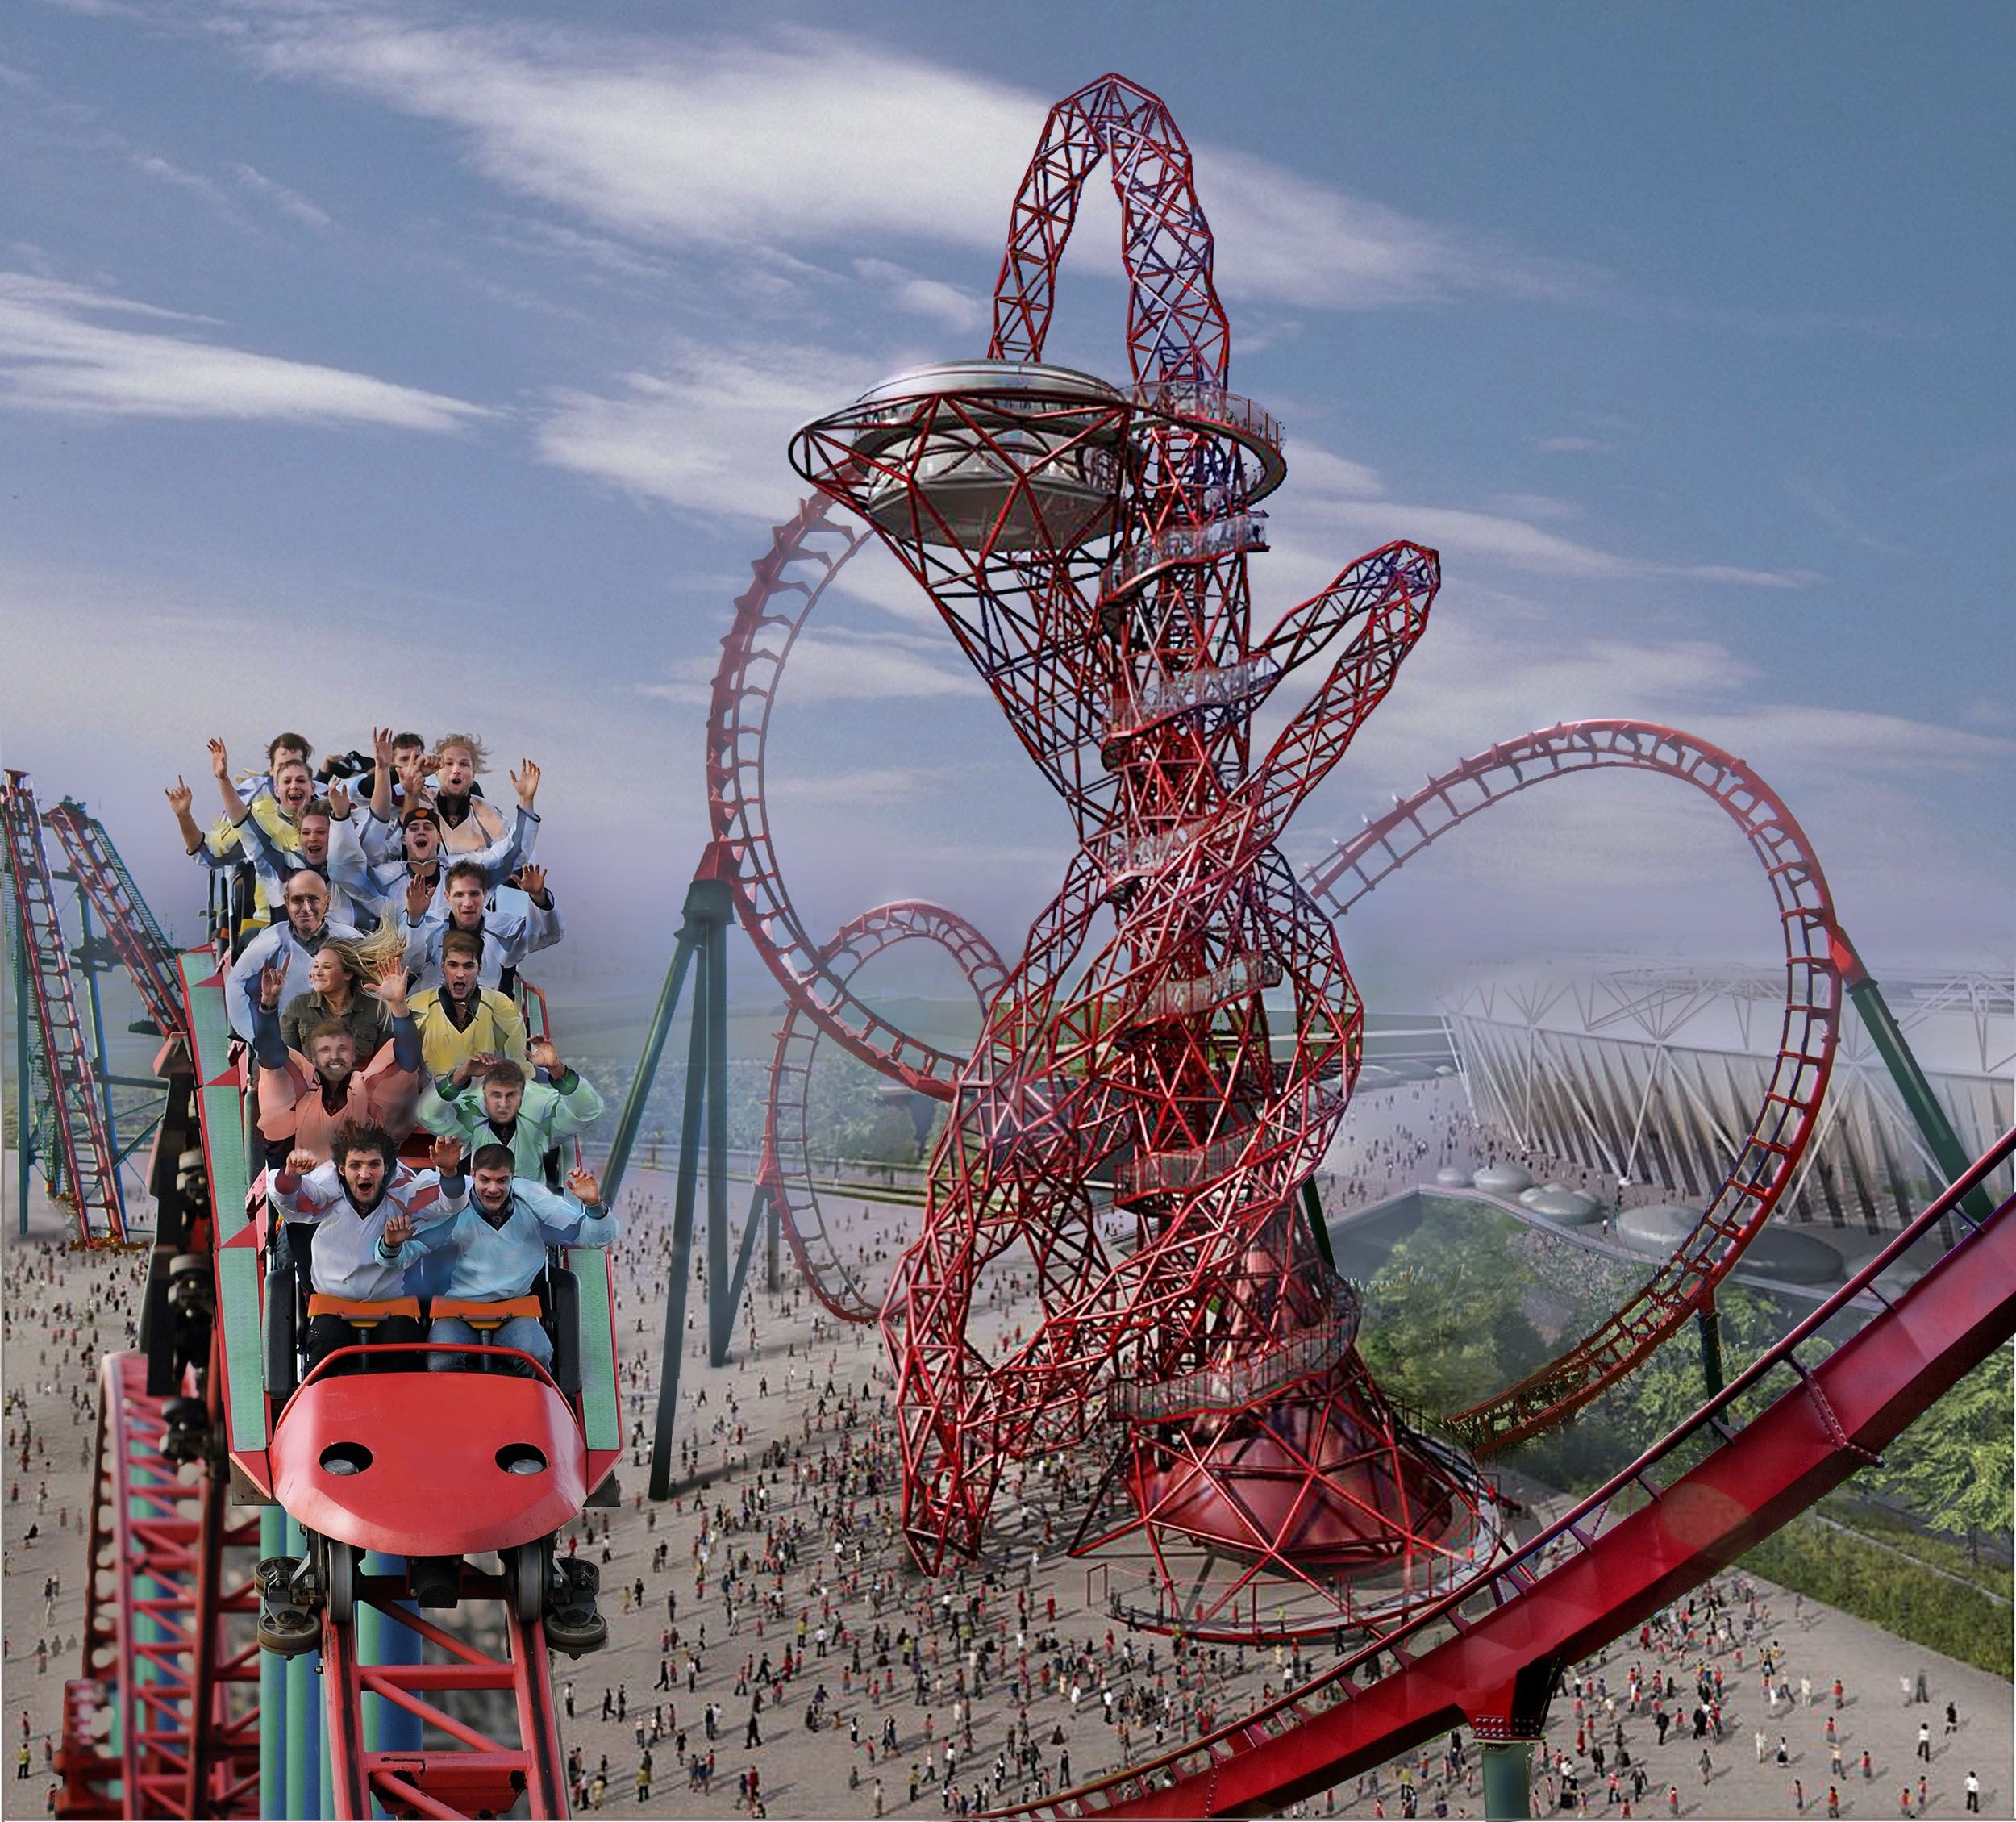 1000 Images About Cool Rides On Pinterest: The ArcelorMittal Sculpture In London Has An Abstract